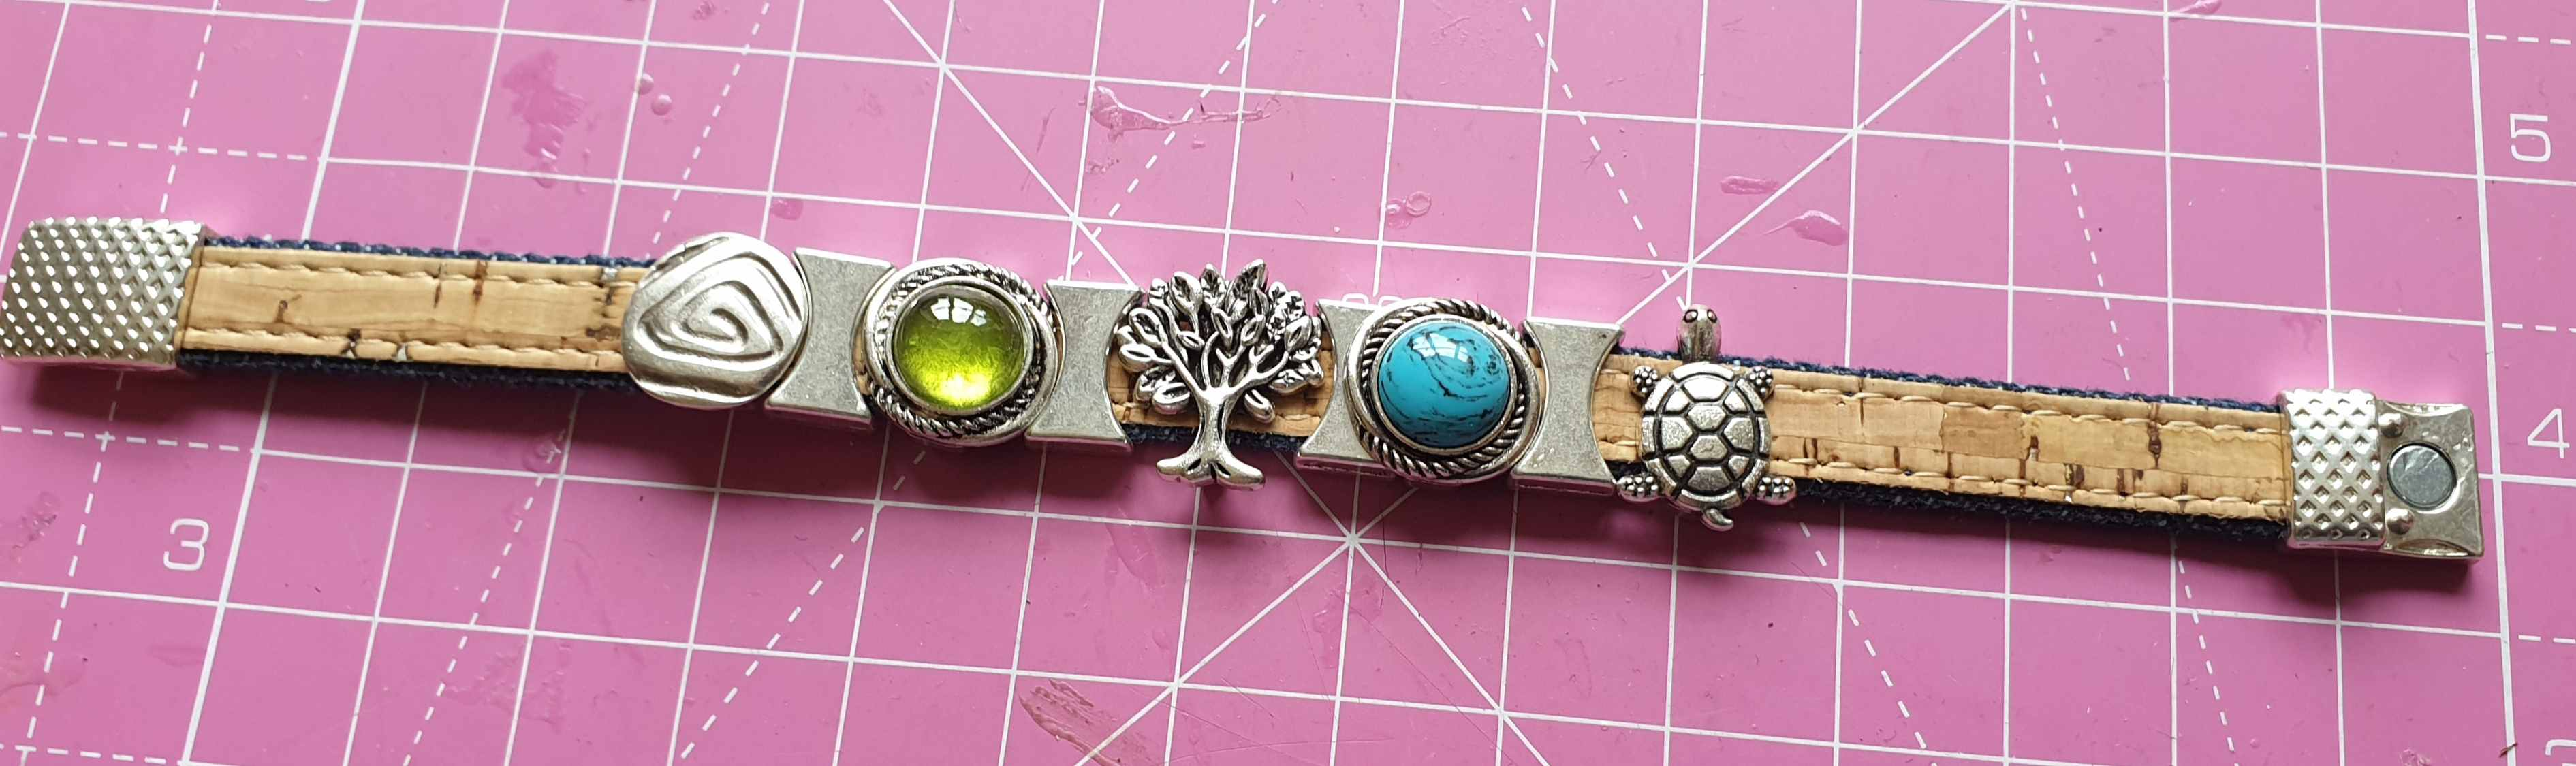 Bracelet with birth stone